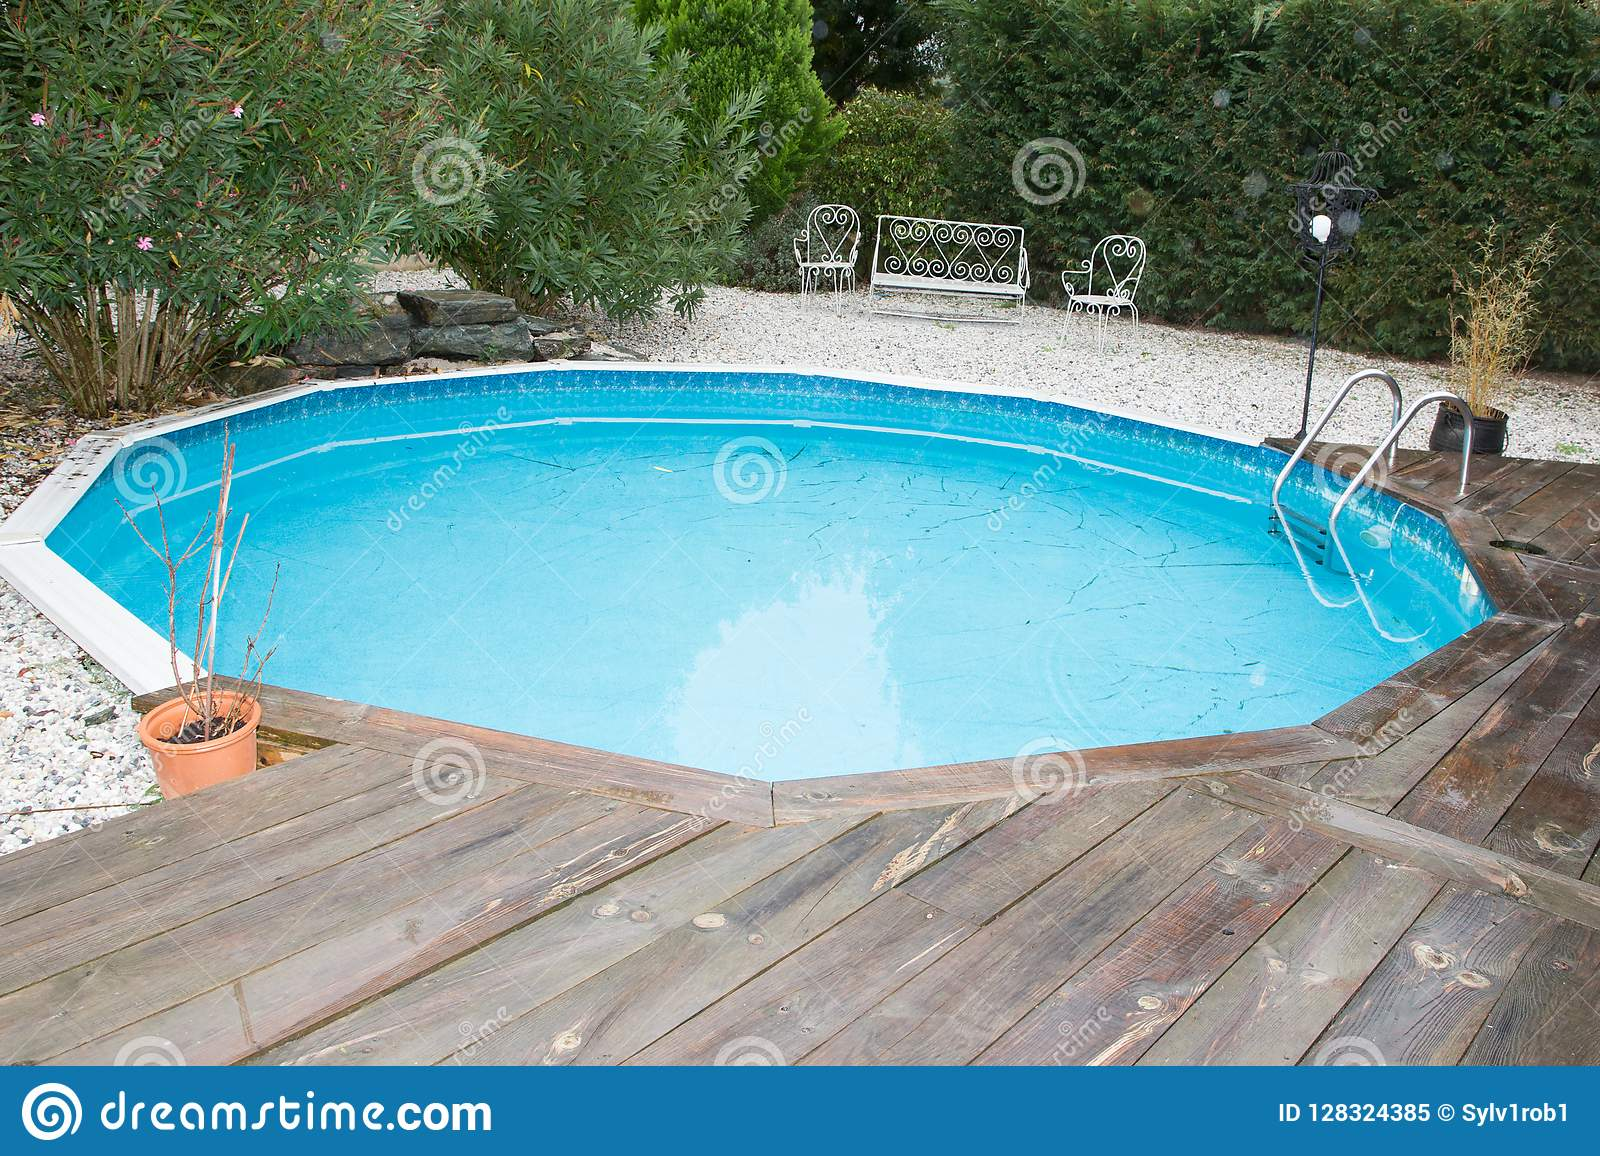 Small Round Swimming Pool In Home Garden Stock Image - Image of ...